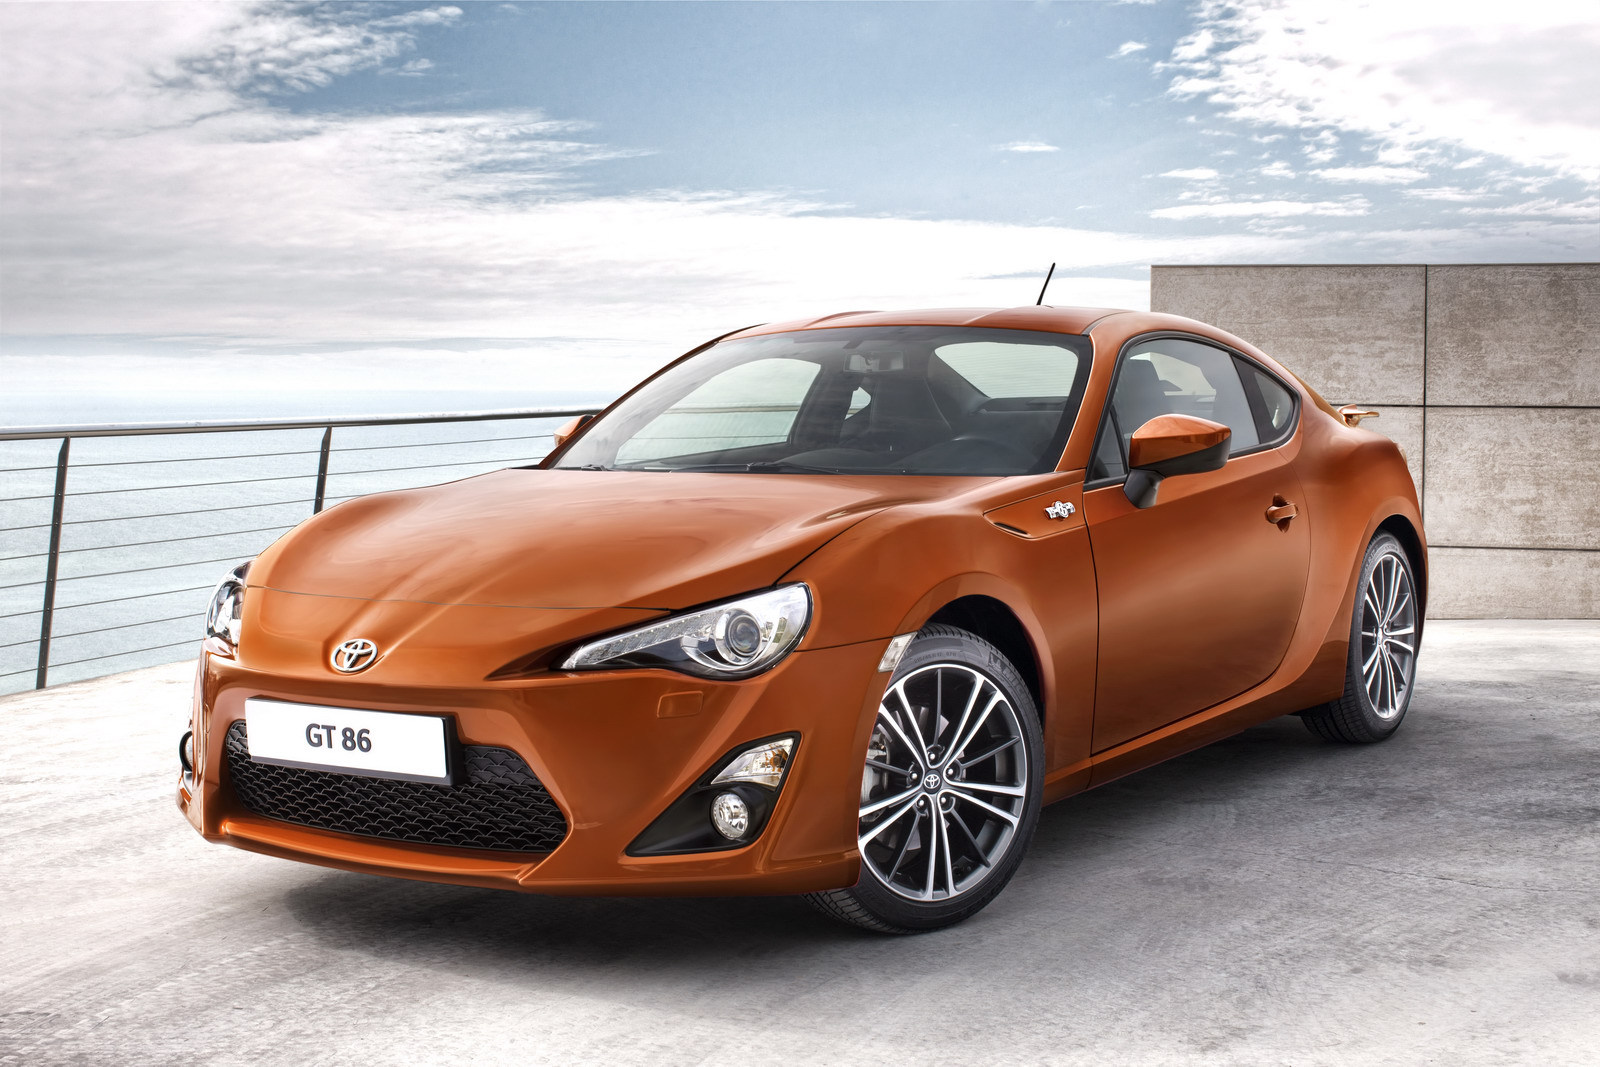 The Toyota GT86